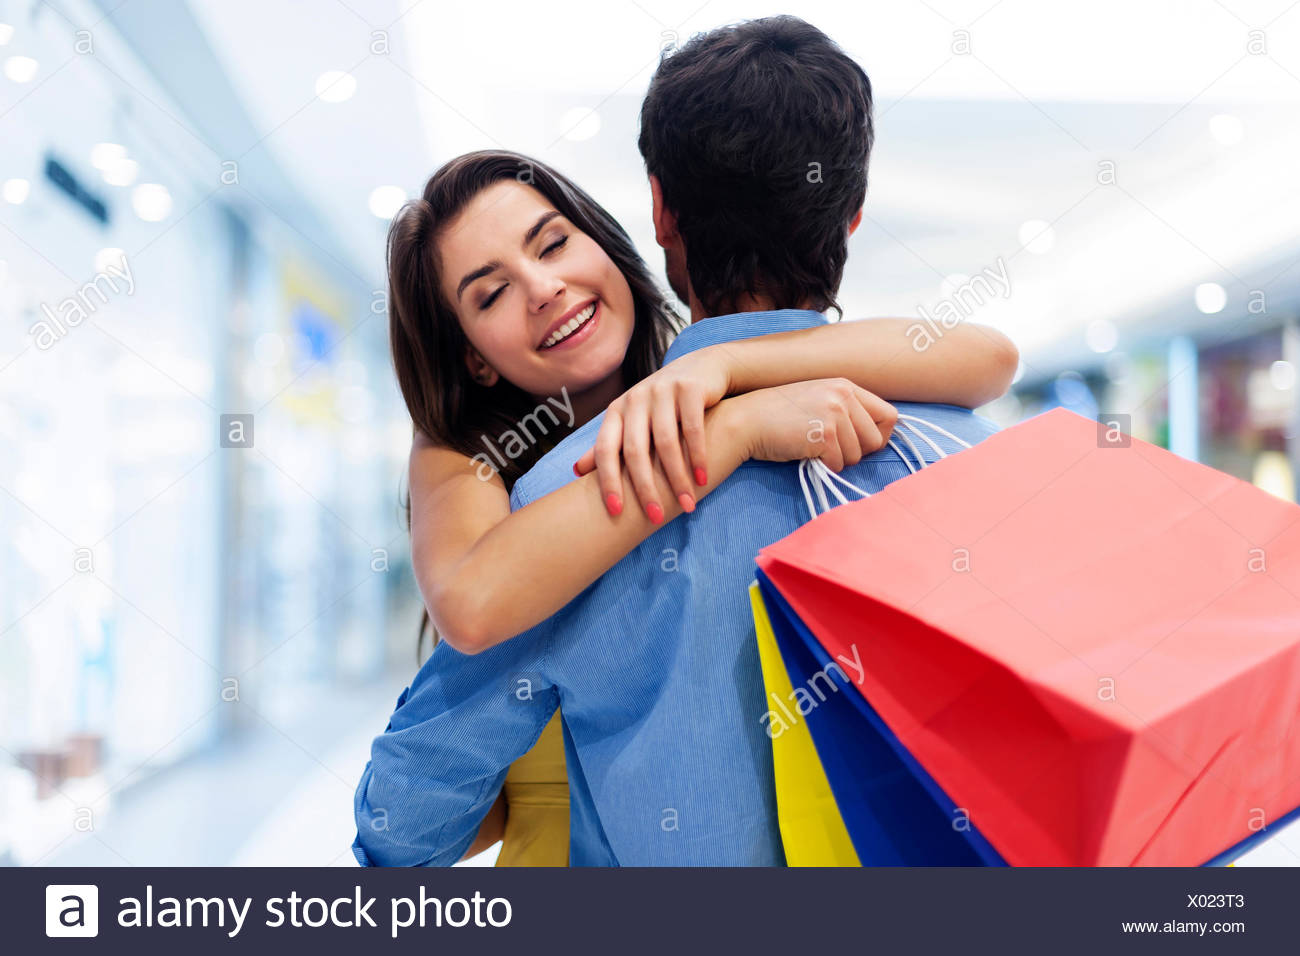 Young beautiful woman welcoming in shopping mall Debica, Poland - Stock Image